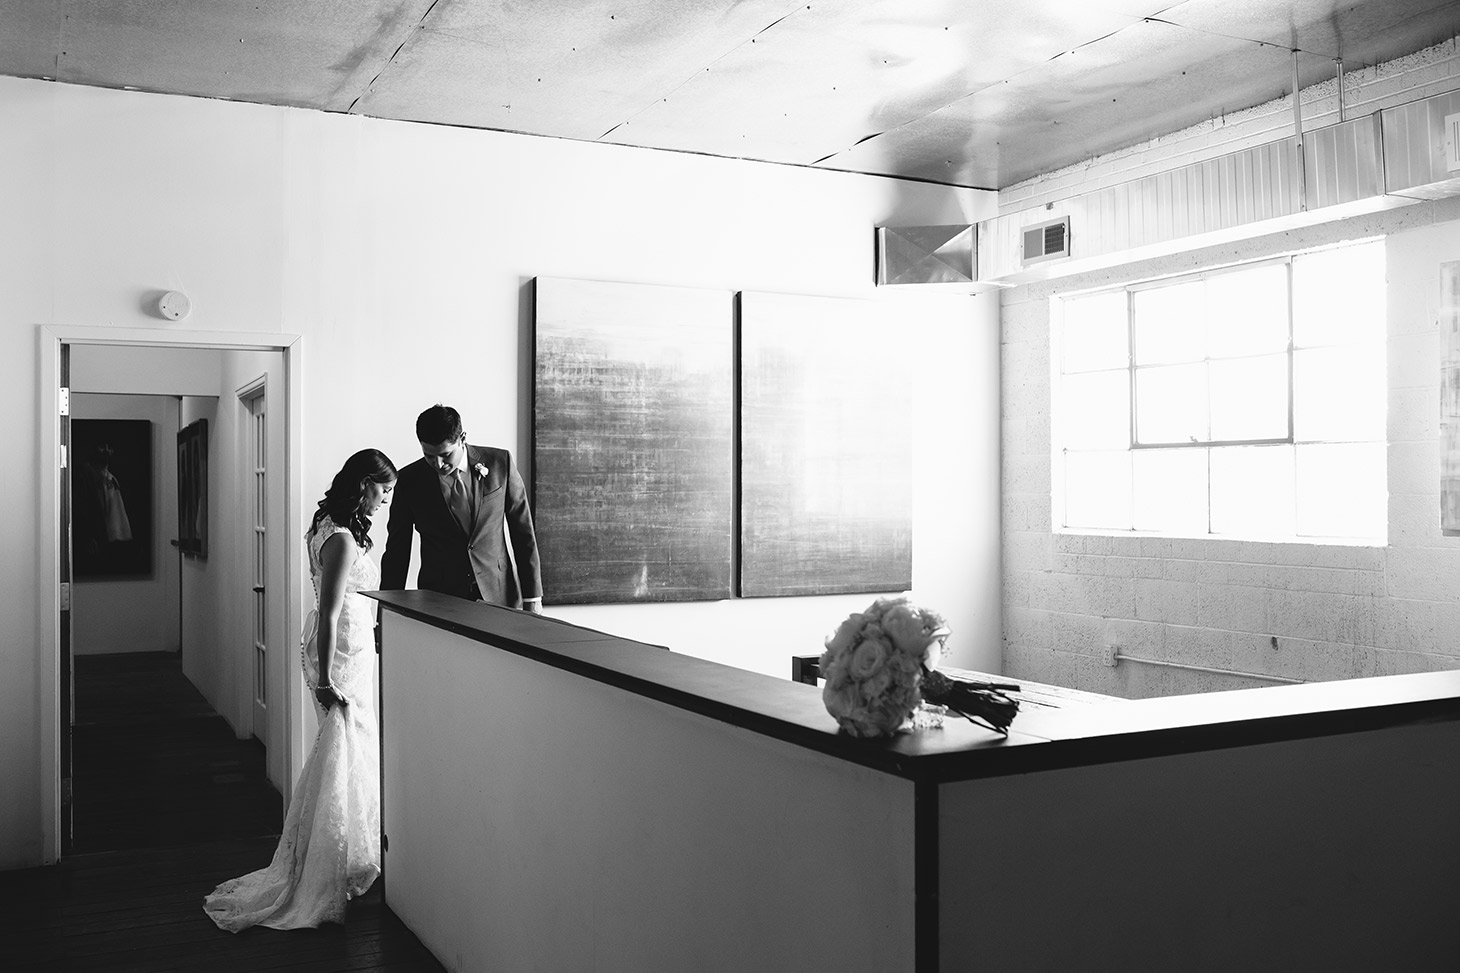 Megan-Newton-Photography-Best-Wedding-Photos-2015-268